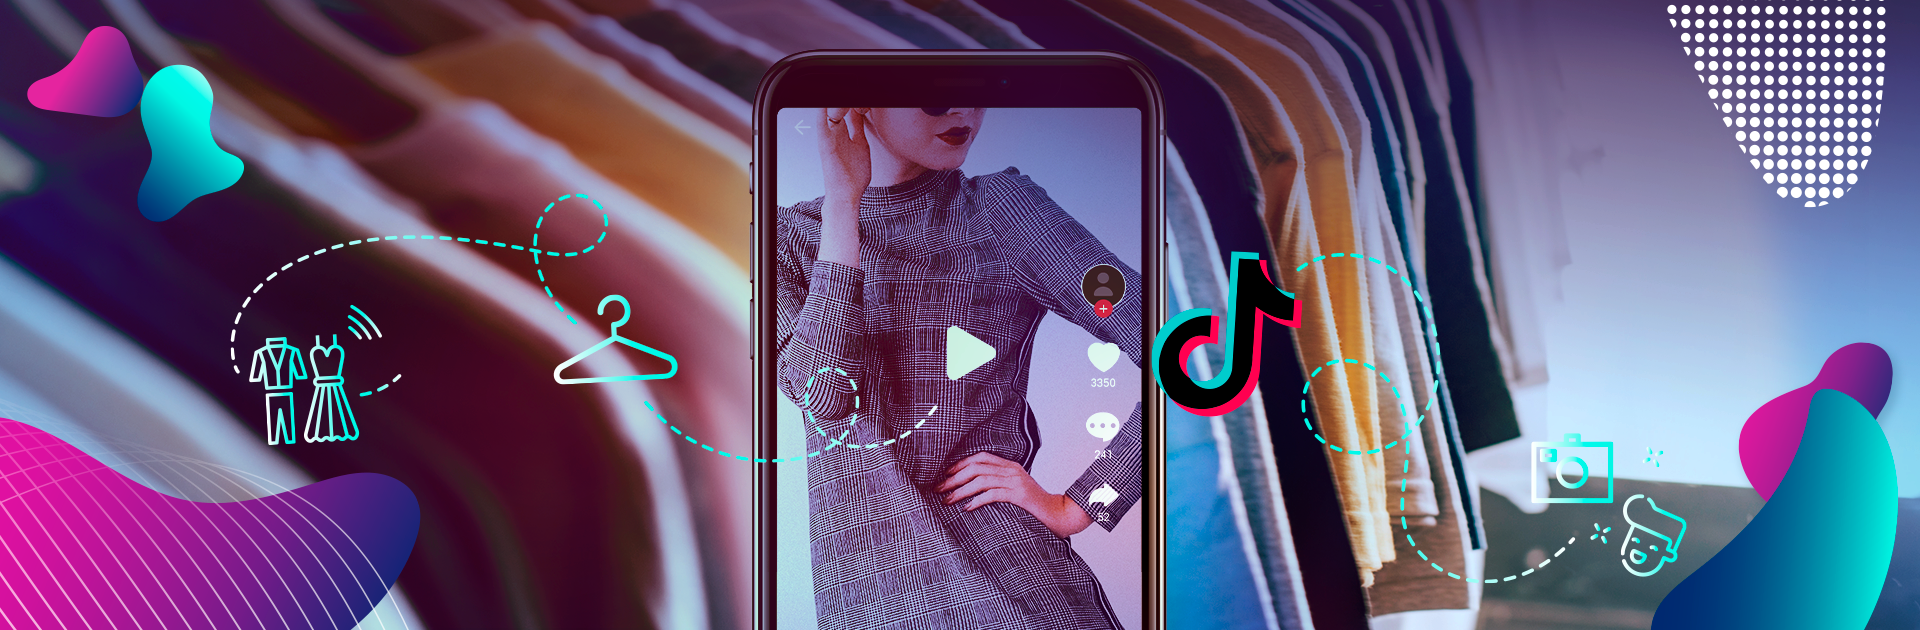 Non segue la moda, la fa: TikTok lancia il Fashion Month